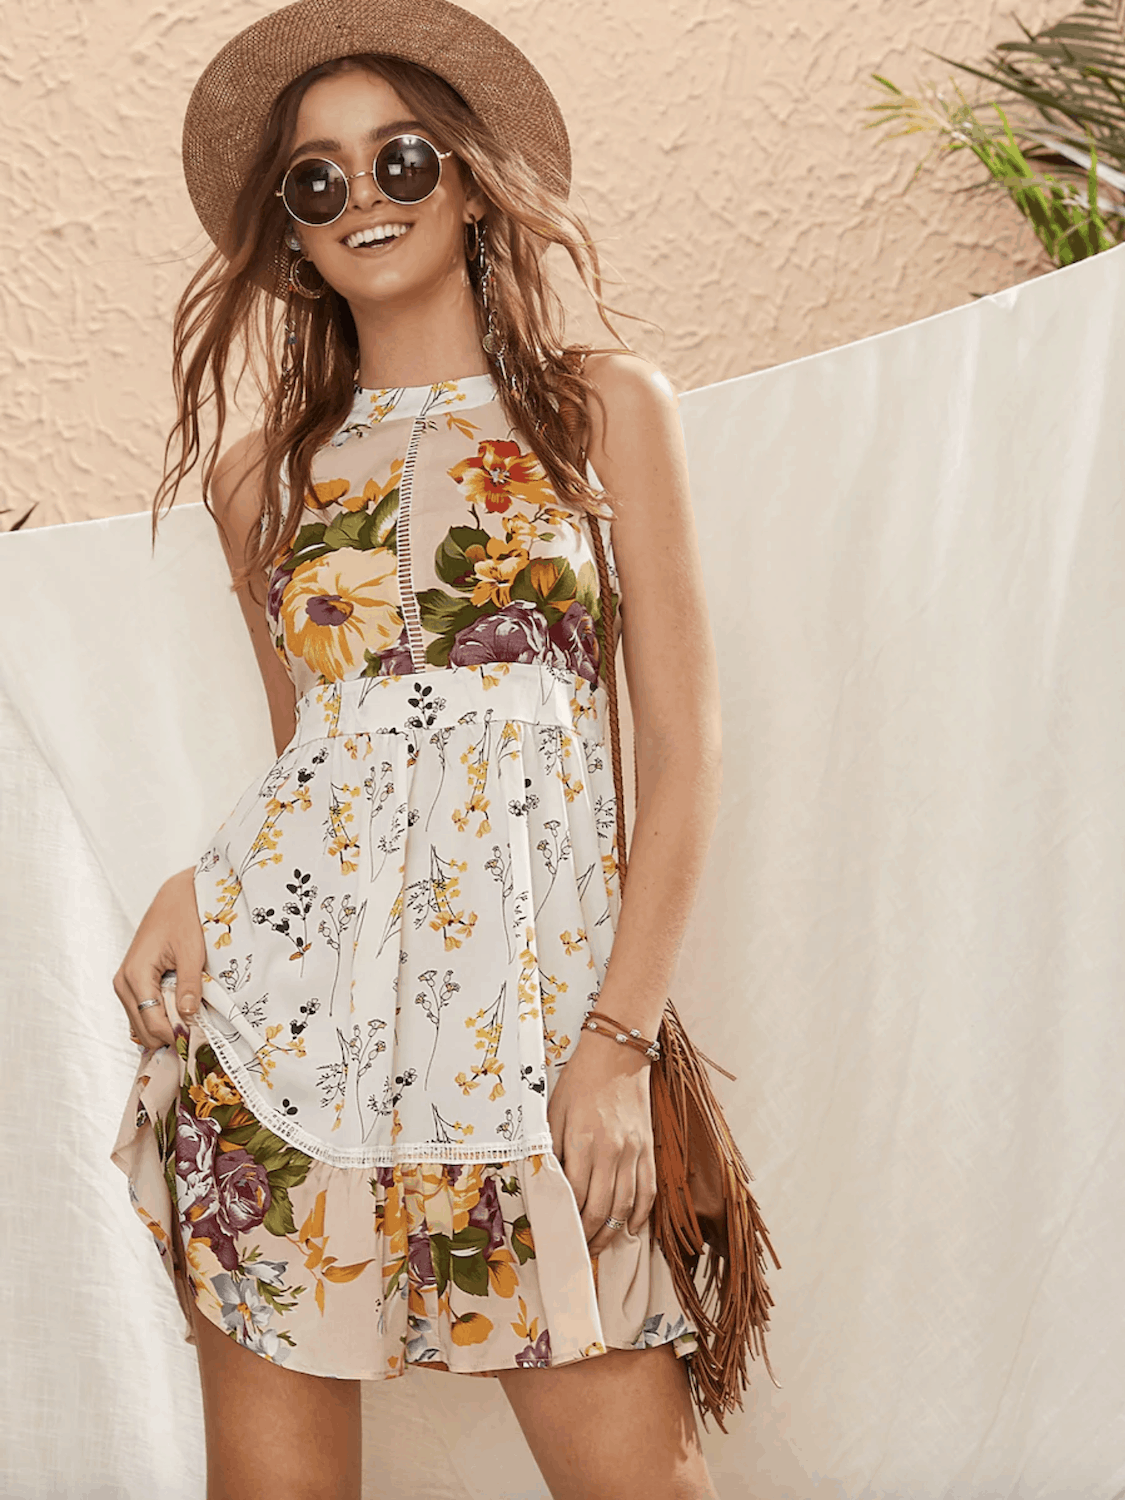 Summer Honeymoon Outfits for Her Floral Print Sleeveless Halter Dress